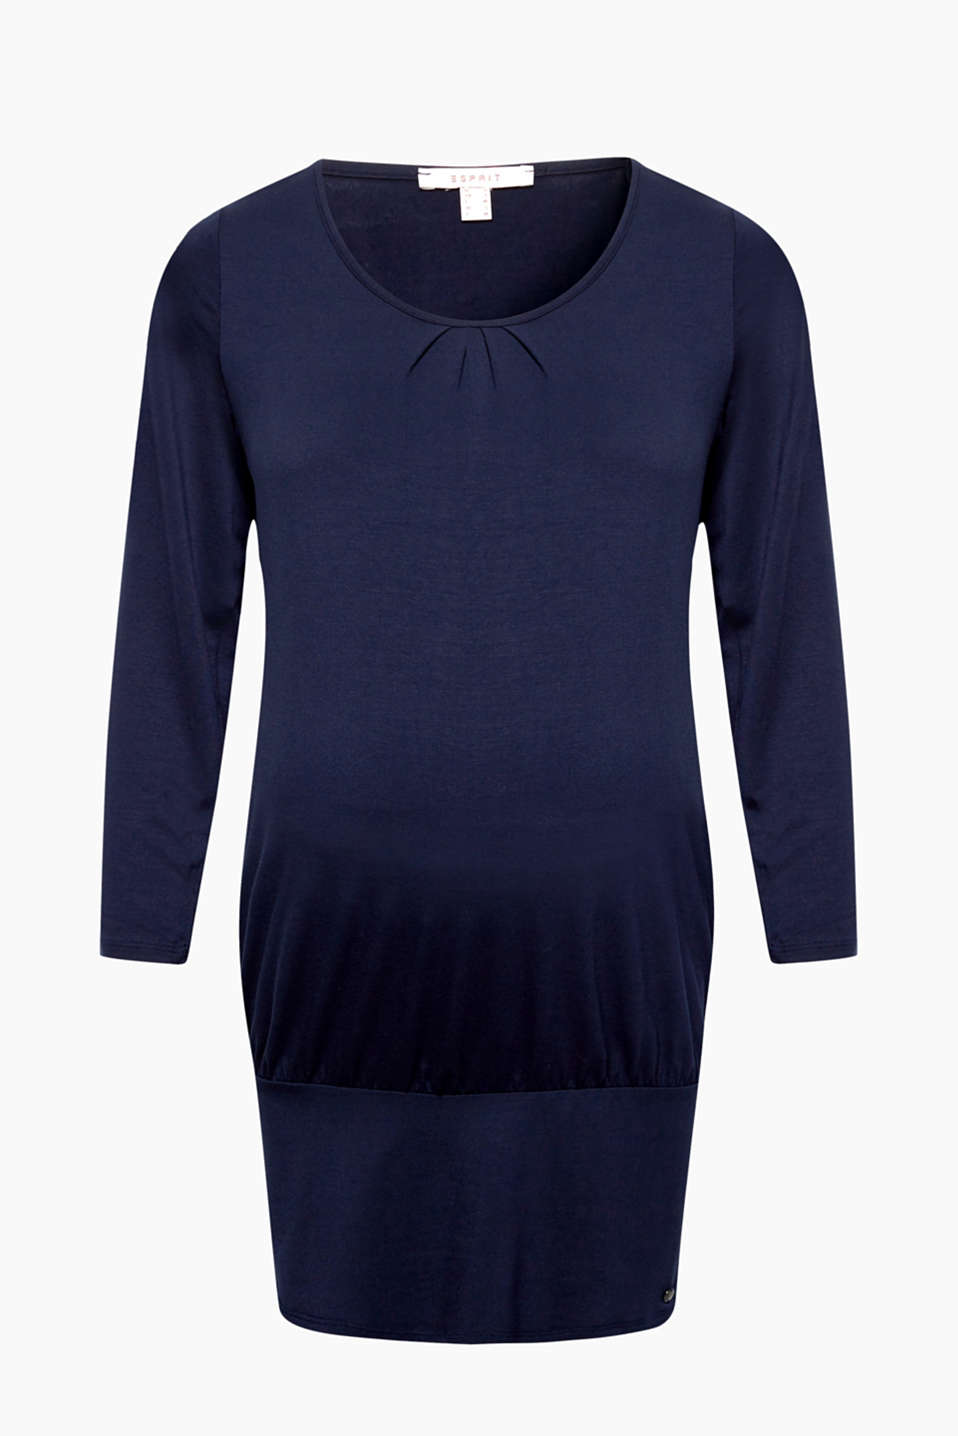 Pleats and three-quarter sleeves - this jersey tunic featuring a deep hem border is fantastically feminine!